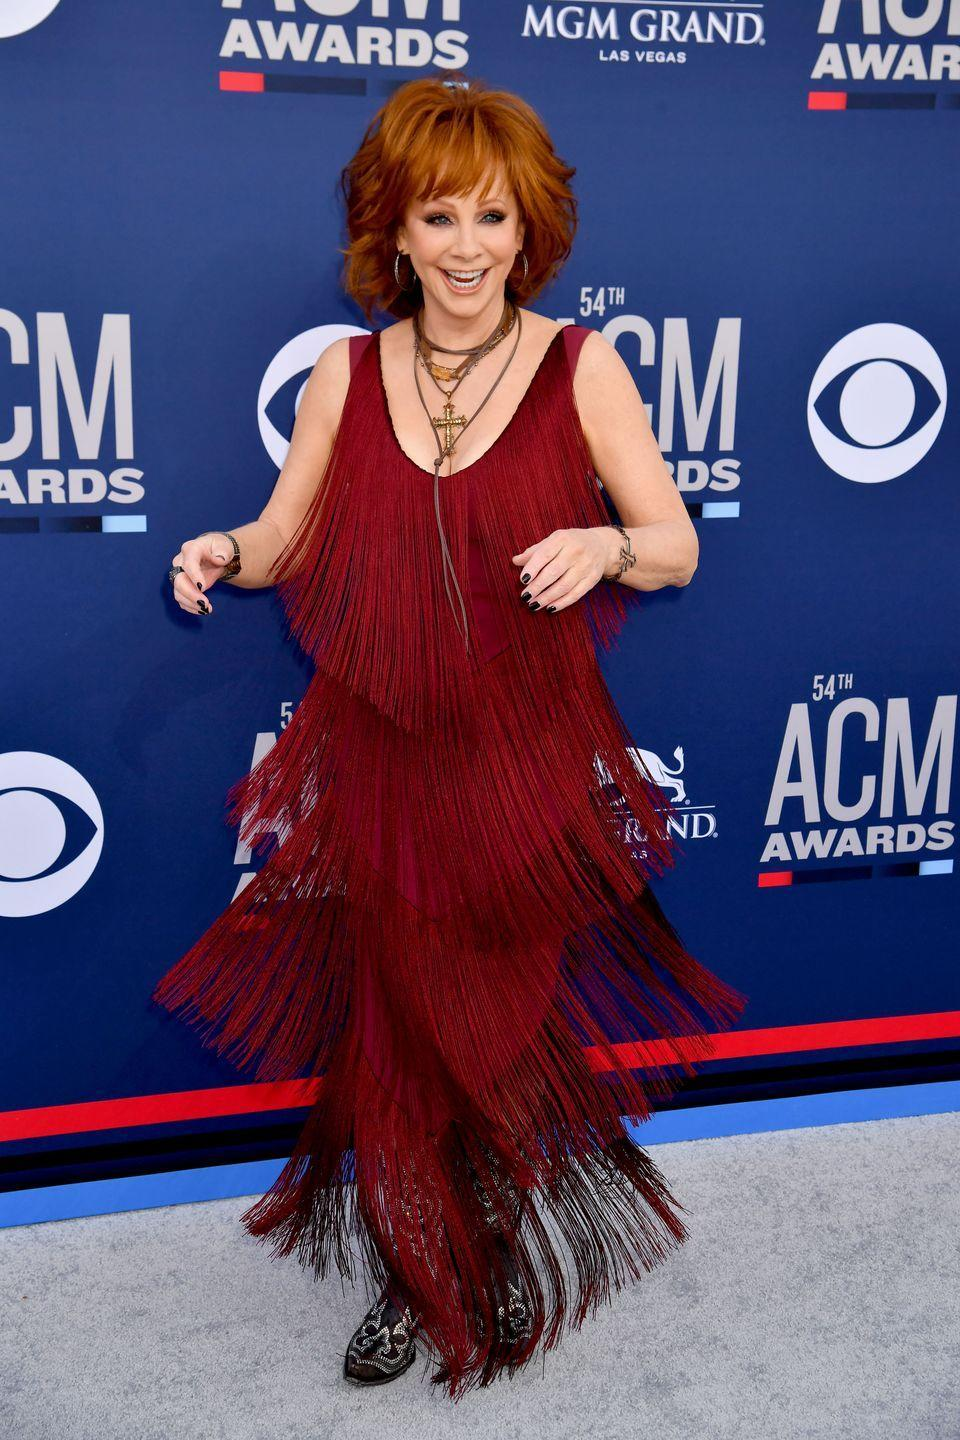 """<p>The country singer has always been open about her Christian faith. In an interview with CMT, she said, """"<a href=""""http://www.cmt.com/news/1775501/reba-mcentire-shares-her-faith-through-music/"""" rel=""""nofollow noopener"""" target=""""_blank"""" data-ylk=""""slk:My faith has helped me tremendously throughout my whole life"""" class=""""link rapid-noclick-resp"""">My faith has helped me tremendously throughout my whole life</a>. I've depended on it. I've trusted it. It's guided me, influenced me and given me advice in all ways.""""</p>"""